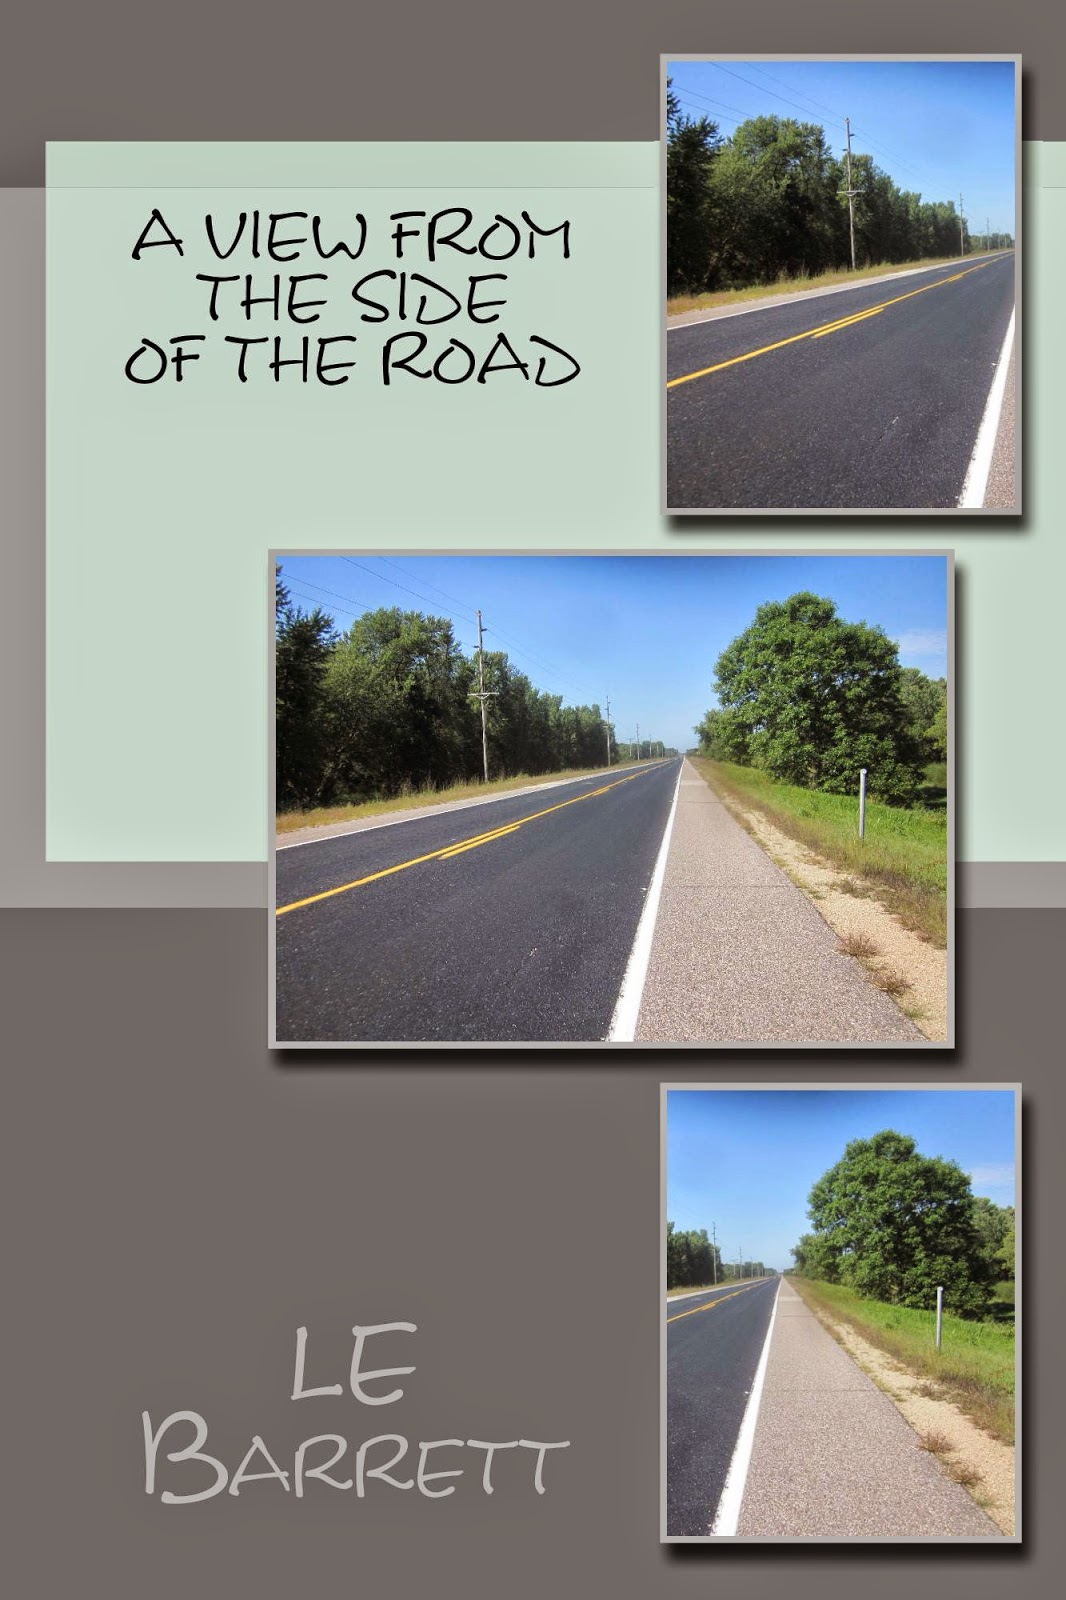 http://www.amazon.com/View-Side-Road-Barrett-ebook/dp/B00IACRFGM/ref=la_B00H8AZONS_1_6?s=books&ie=UTF8&qid=1396634139&sr=1-6